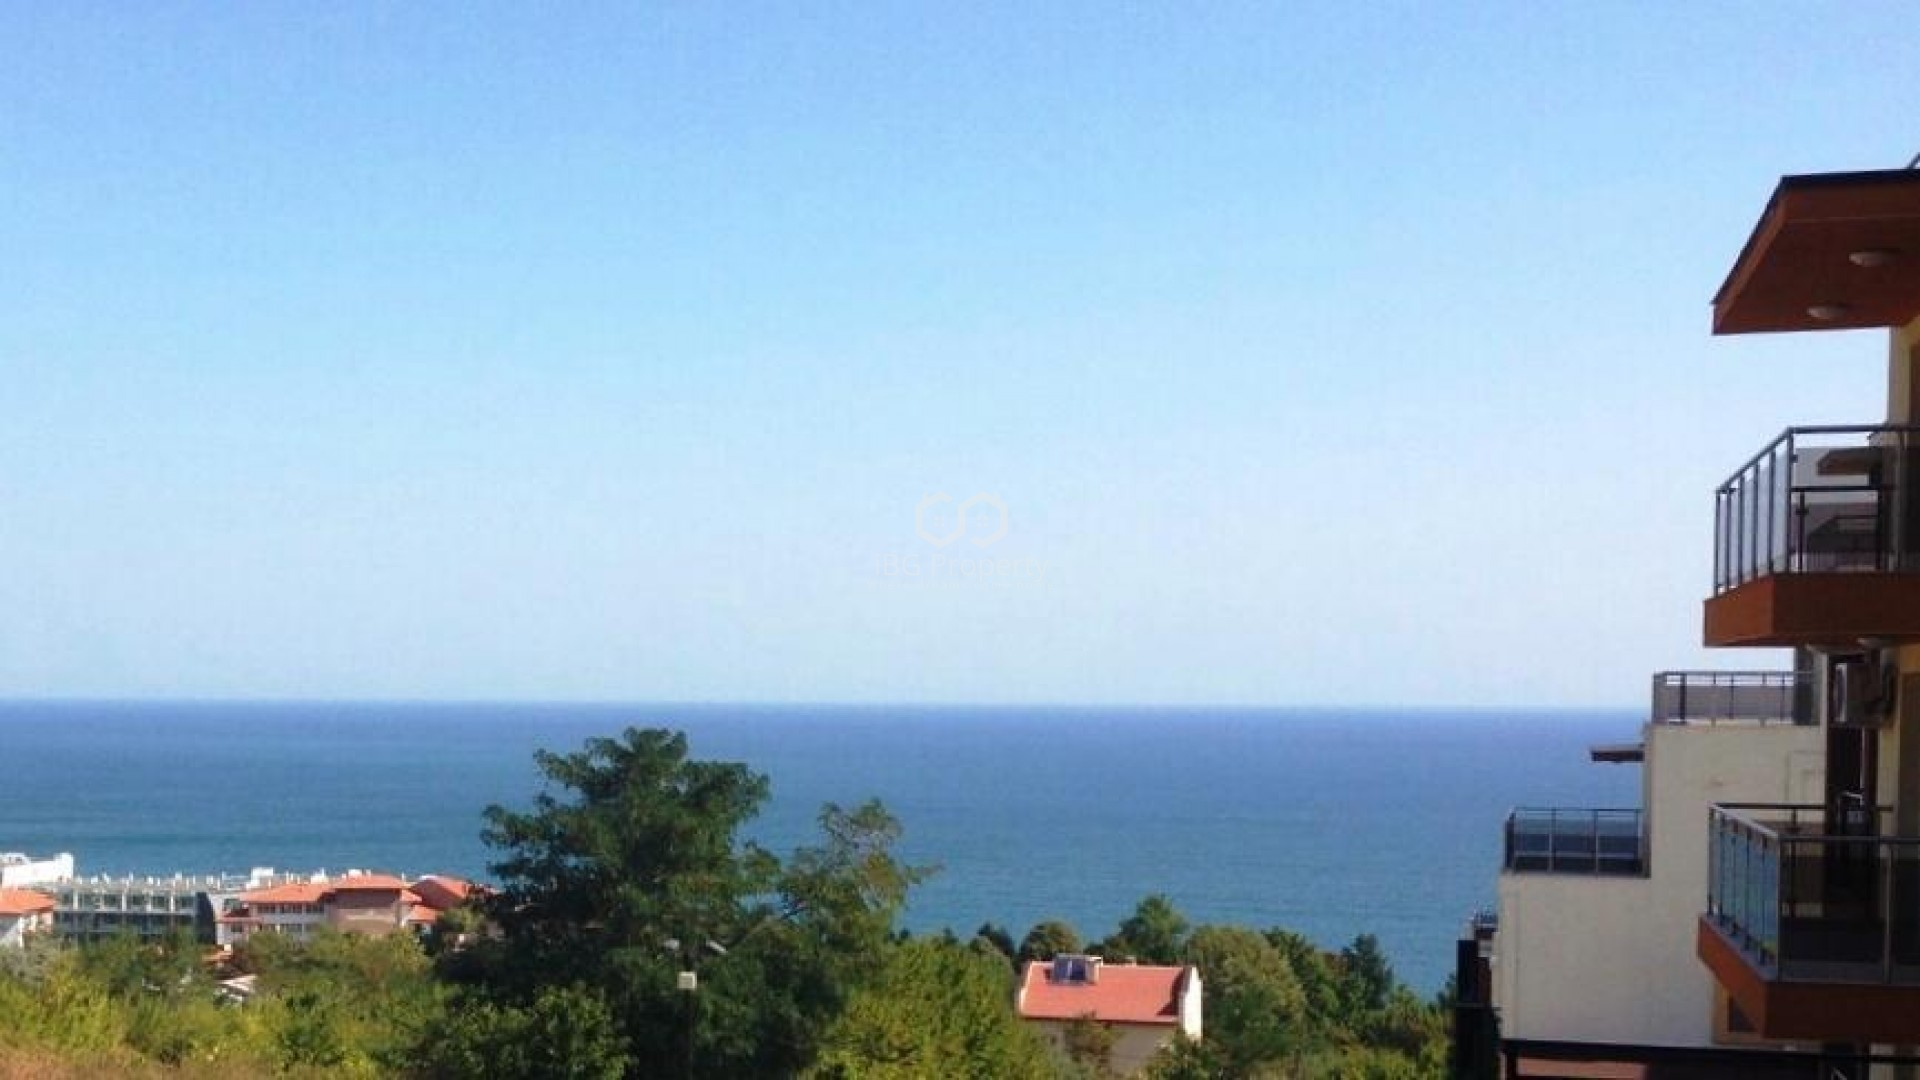 One room apartment Byala 48 m2